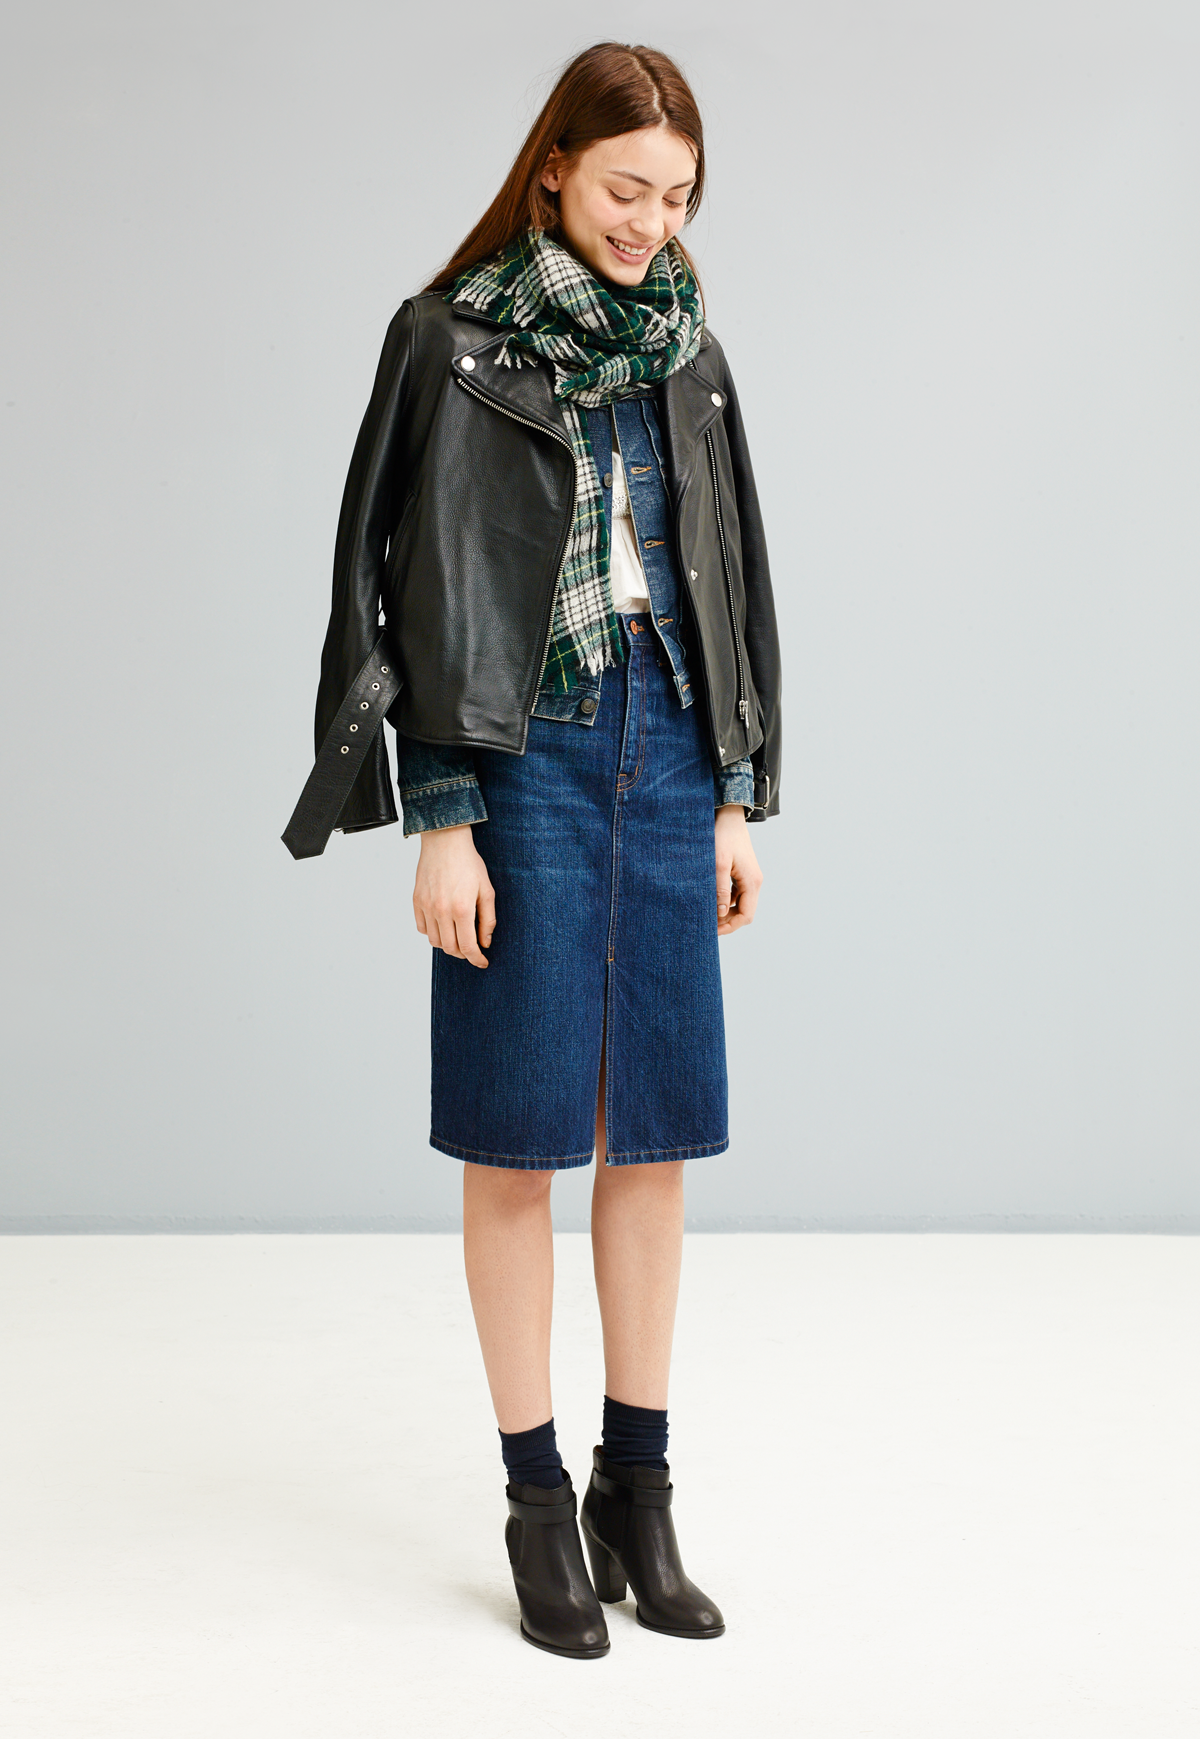 6c55974394 Madewell ultimate leather jacket worn with denim midi skirt + the Lonny  boot.